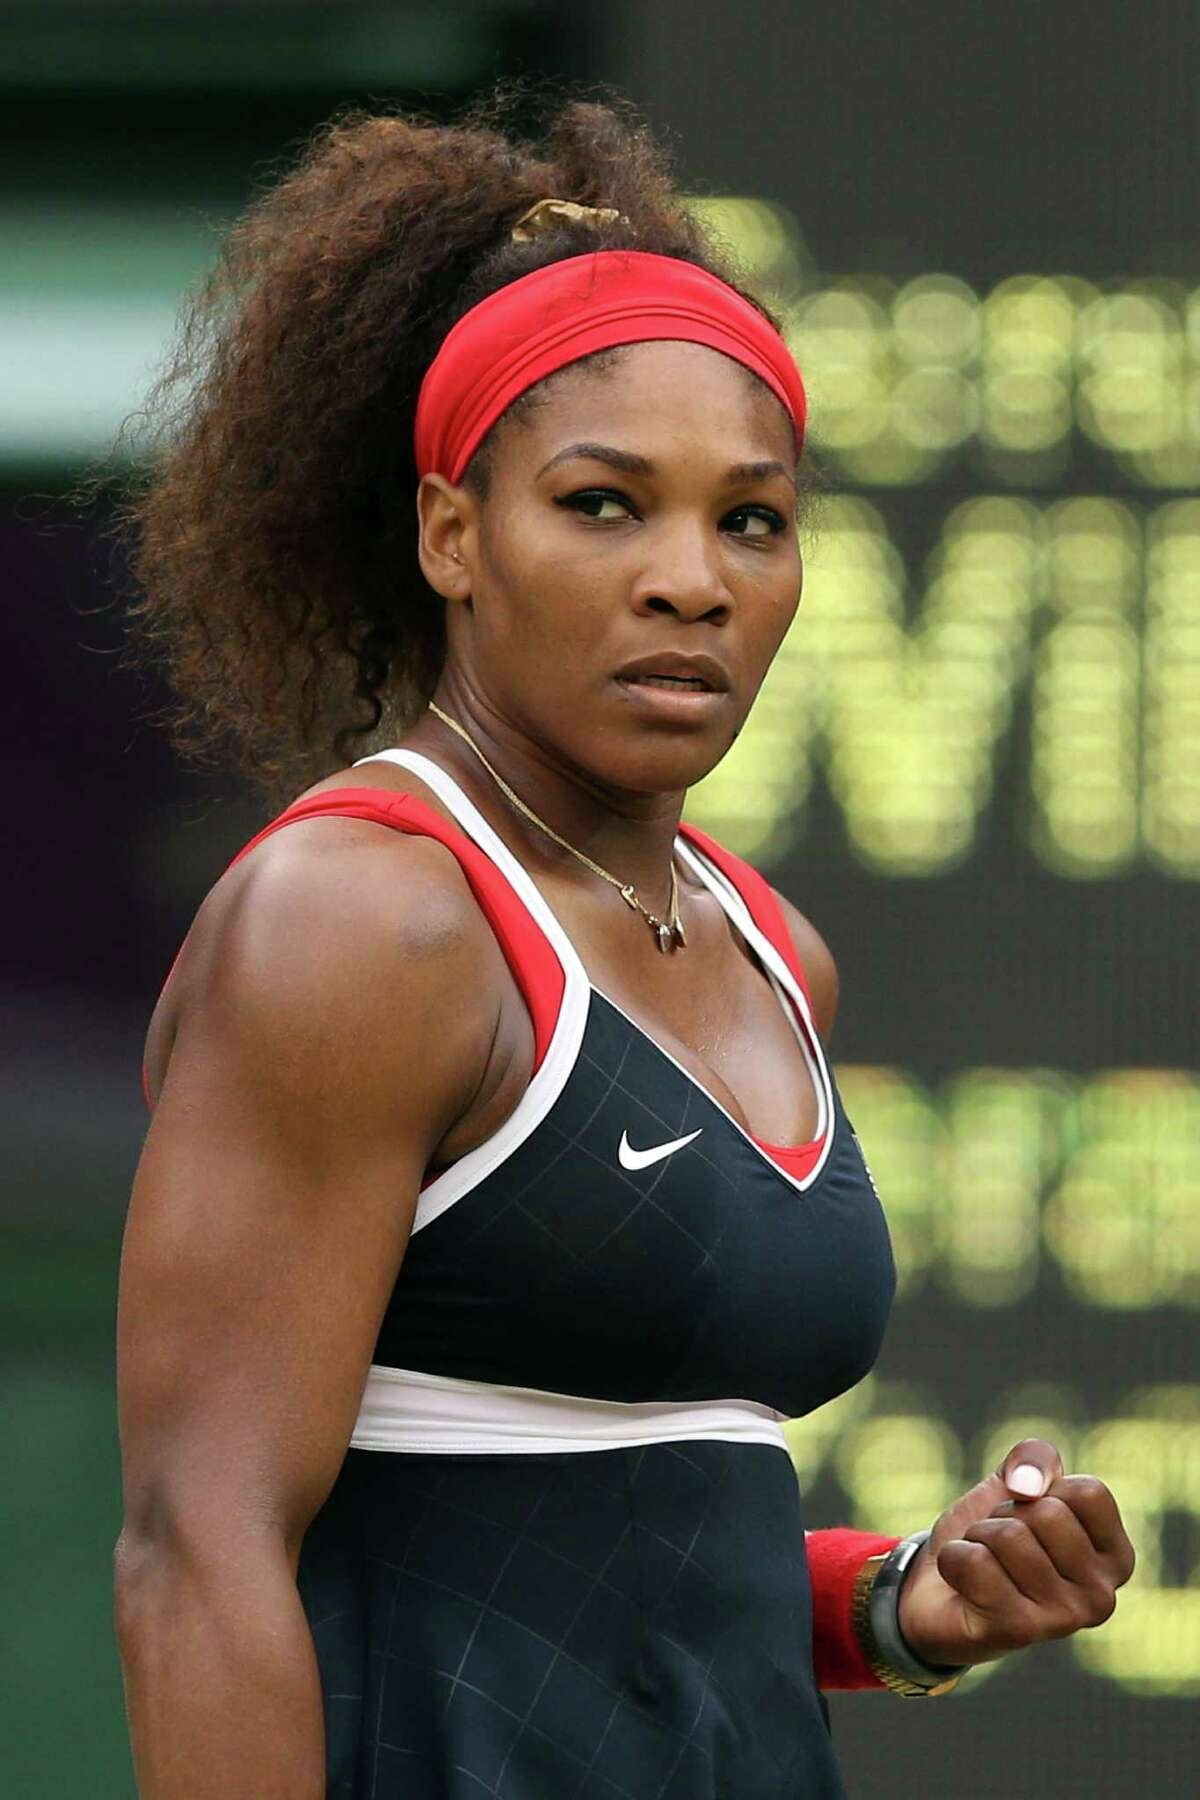 The biggest names in tennis, Serena Williams (above) and Roger Federer, both advanced to the quarterfinals Wednesday. The Wimbledon venue, however, is the bigger draw in these Olympics.